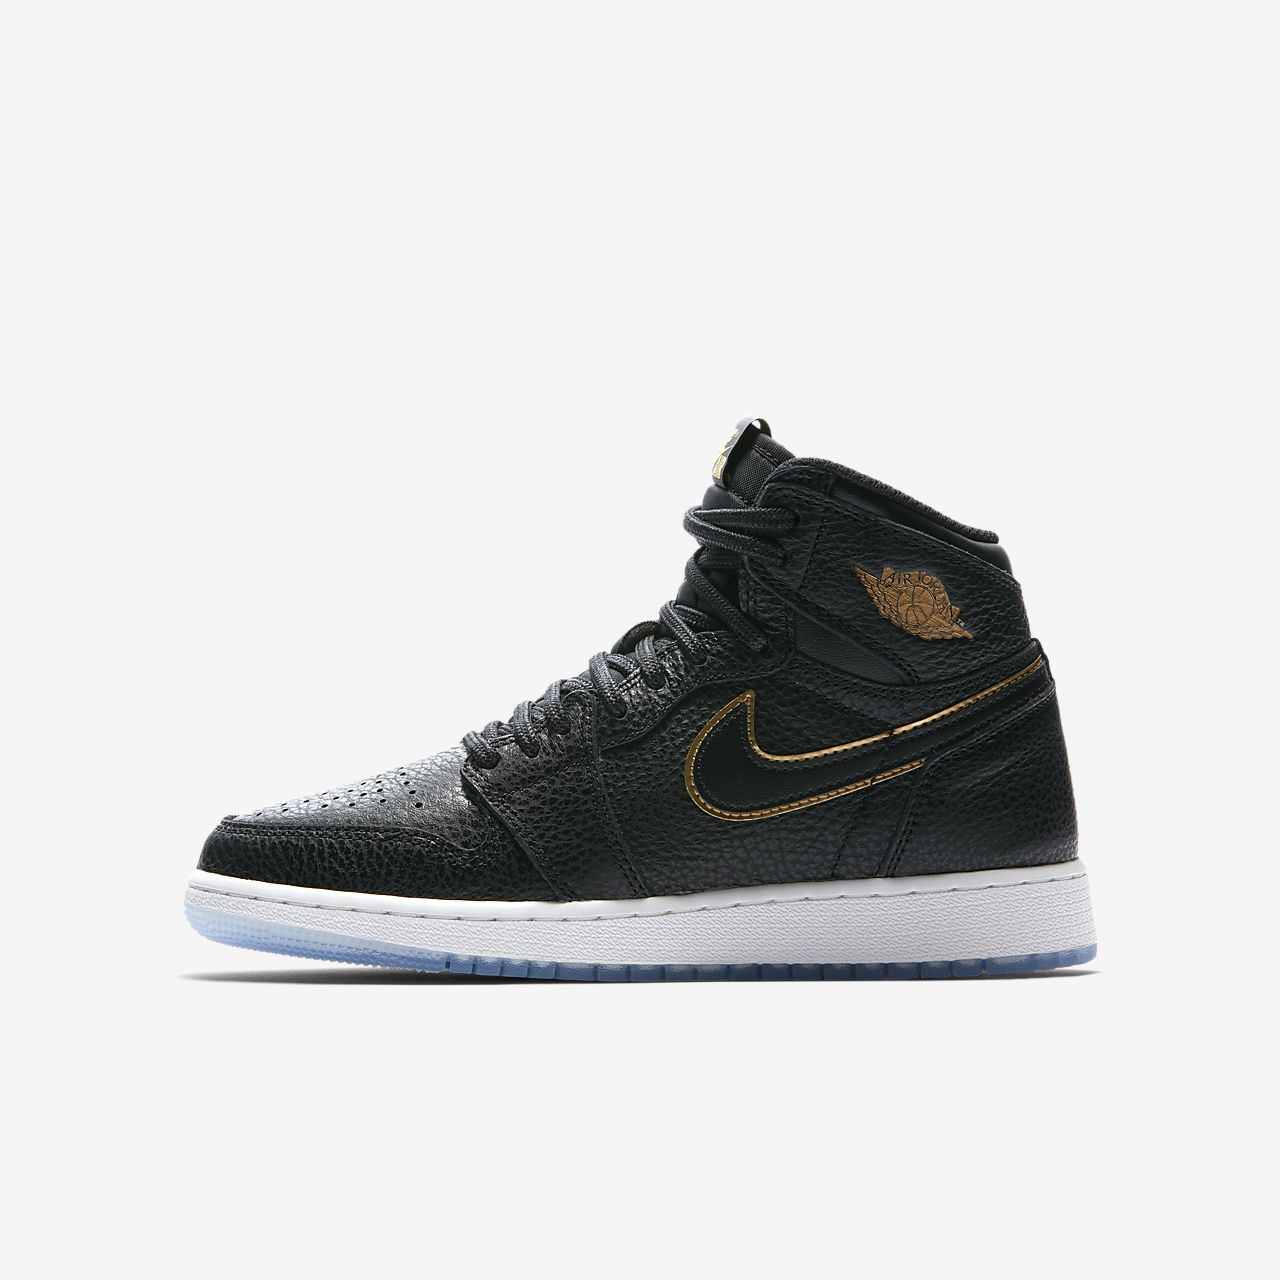 jordan retro high 1 black nz